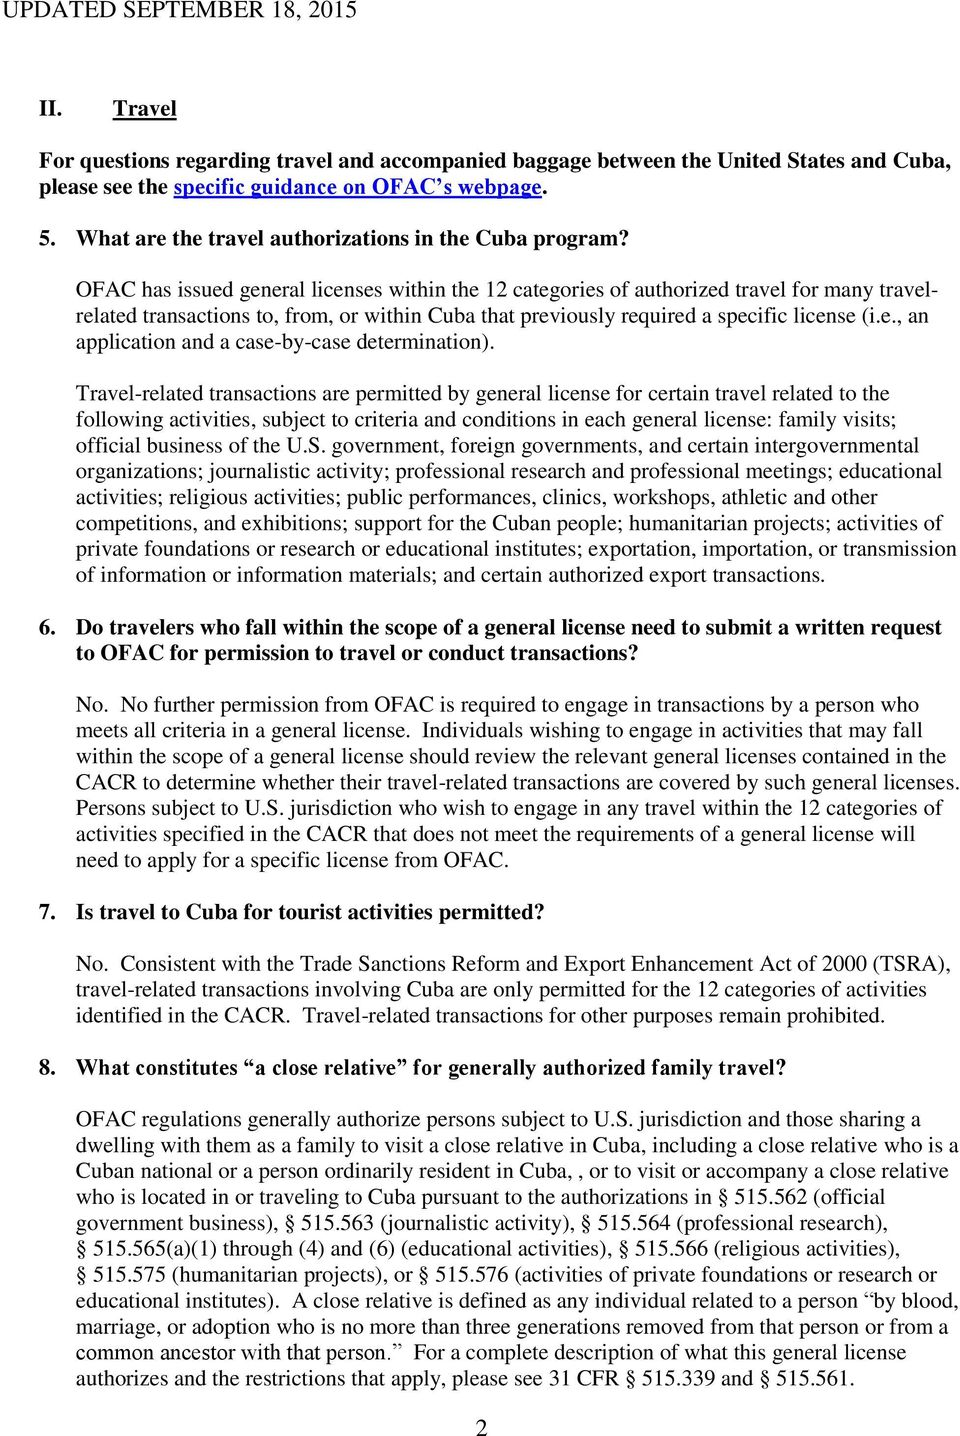 OFAC has issued general licenses within the 12 categories of authorized travel for many travelrelated transactions to, from, or within Cuba that previously required a specific license (i.e., an application and a case-by-case determination).